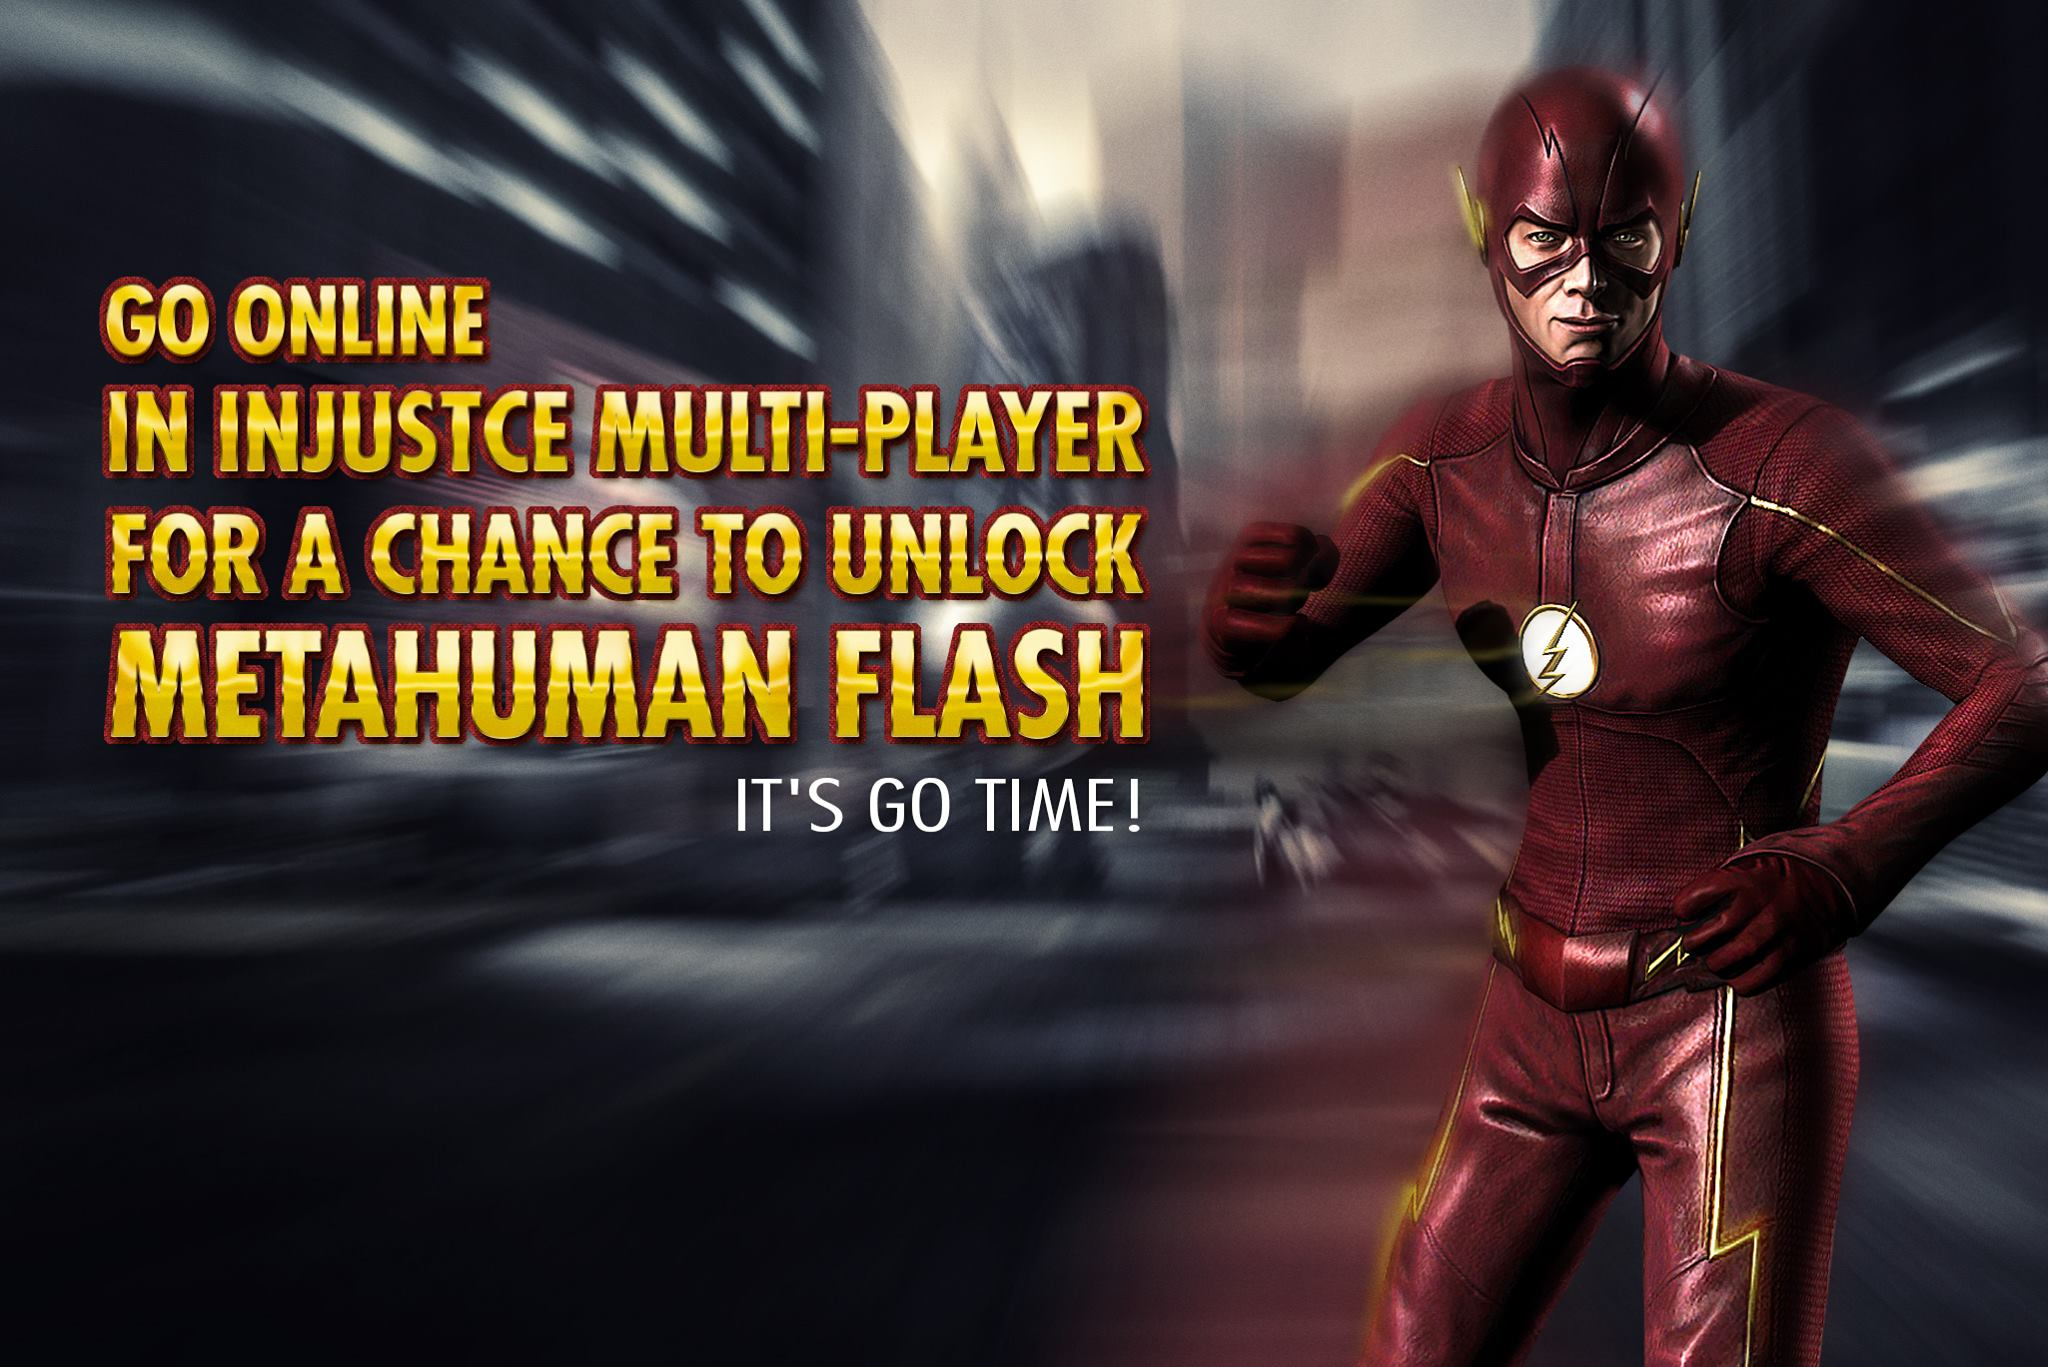 Metahuman CW Flash Multiplayer Challenge For Injustice Mobile